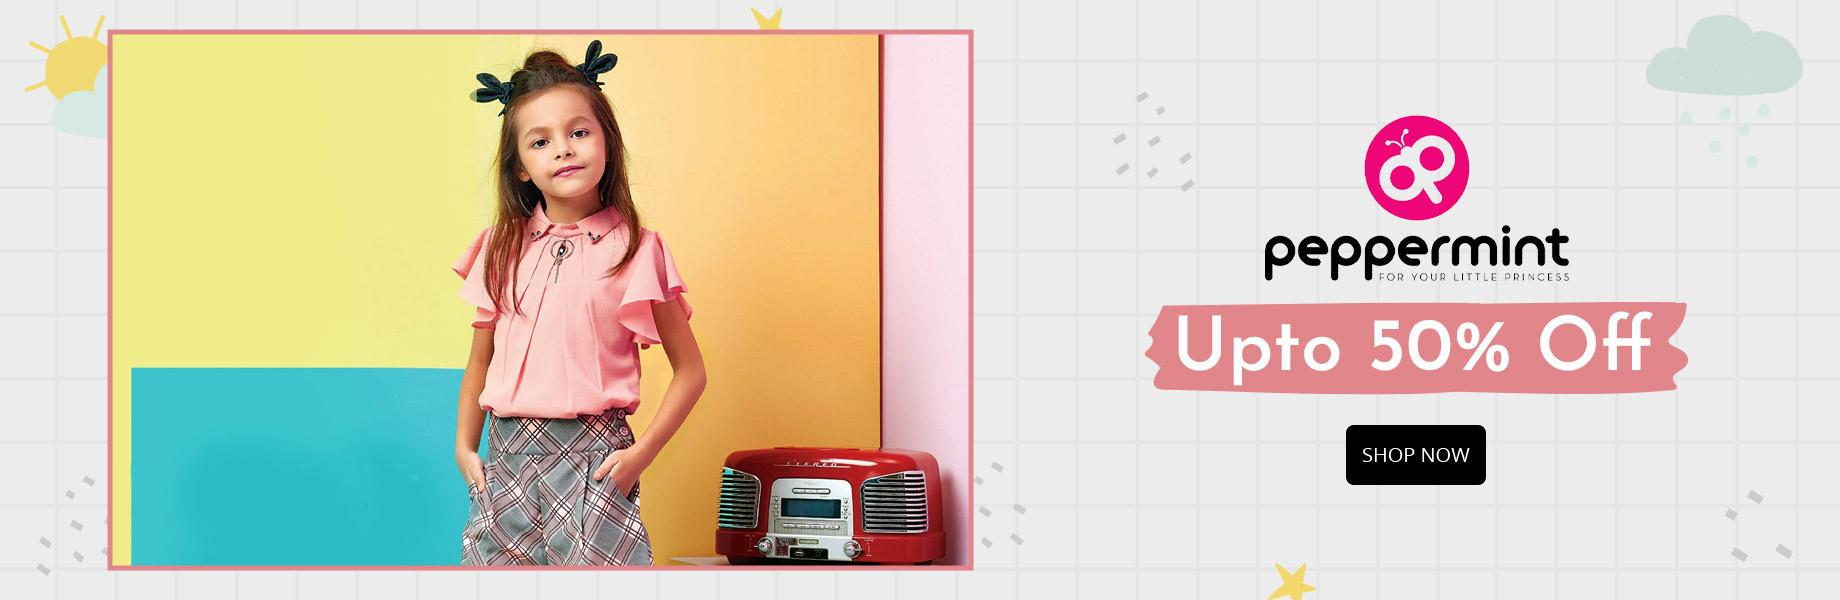 Kids-Page-Iconic-Brands-Static-Peppermint-Web.jpg